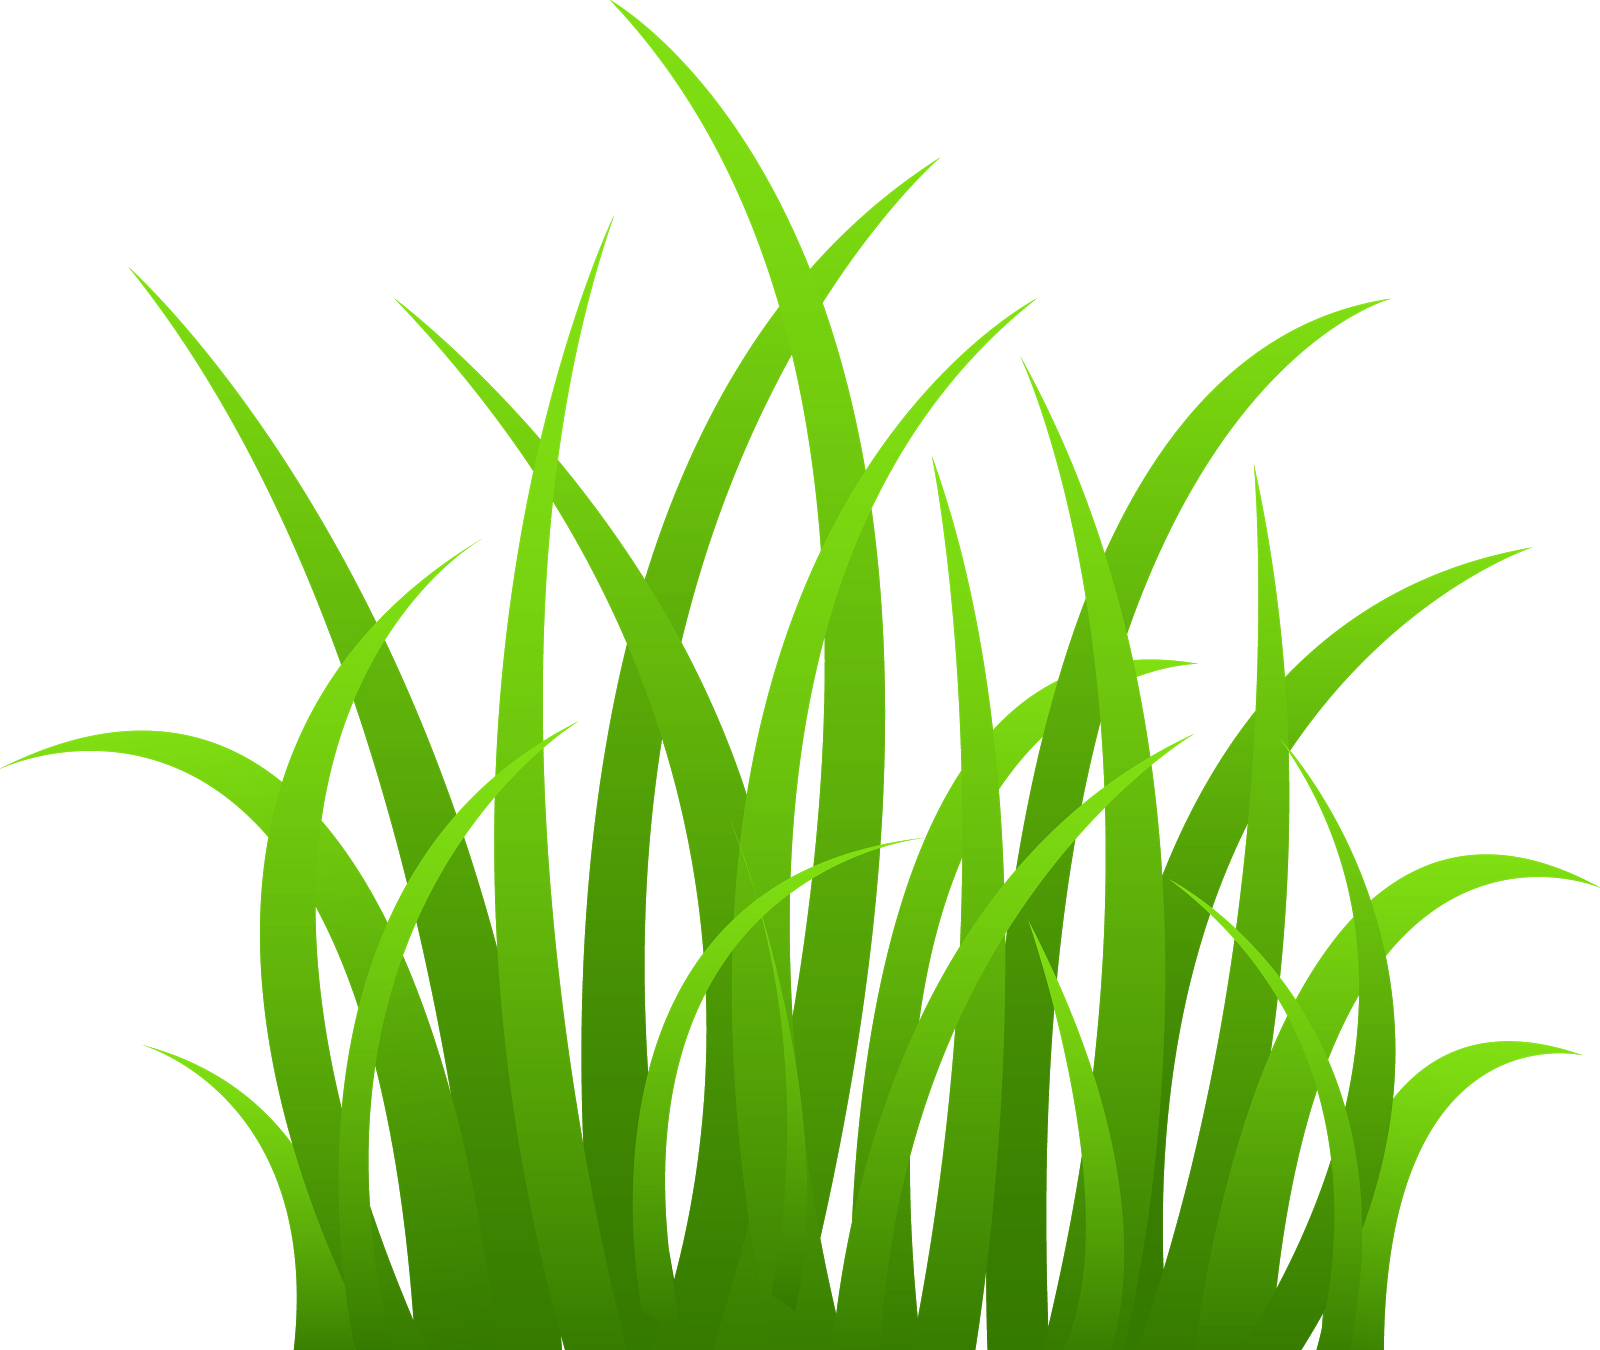 Grass Clipart Free Clip Art Images.